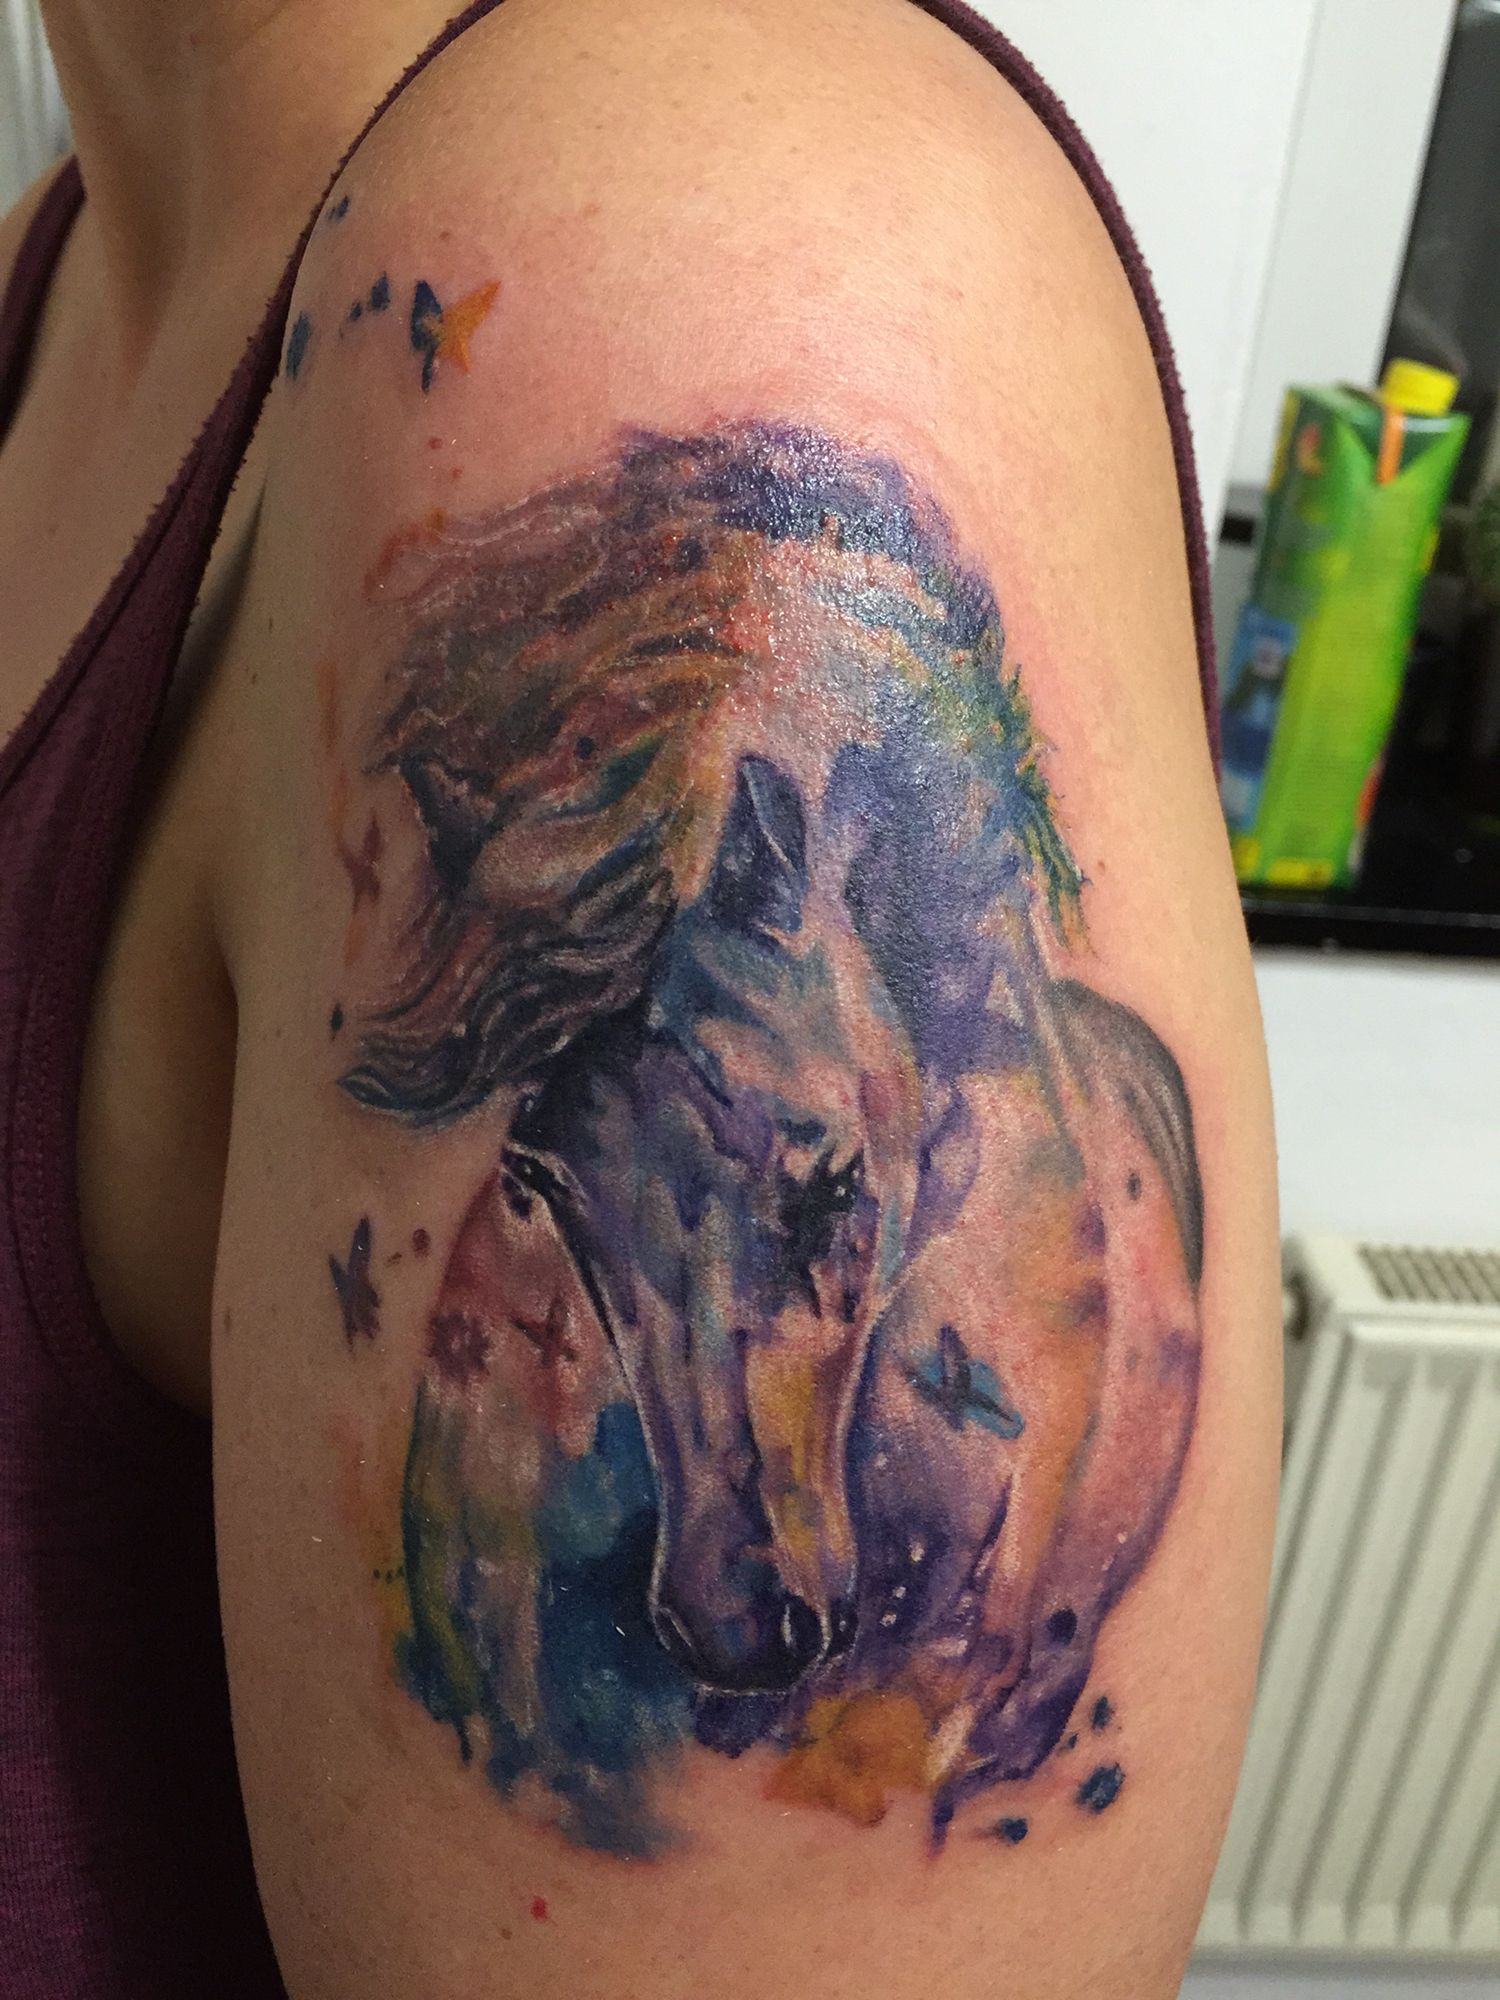 Tattoo Watercolor Pferd Scar Tattoo Tattoos Watercolor Tattoo